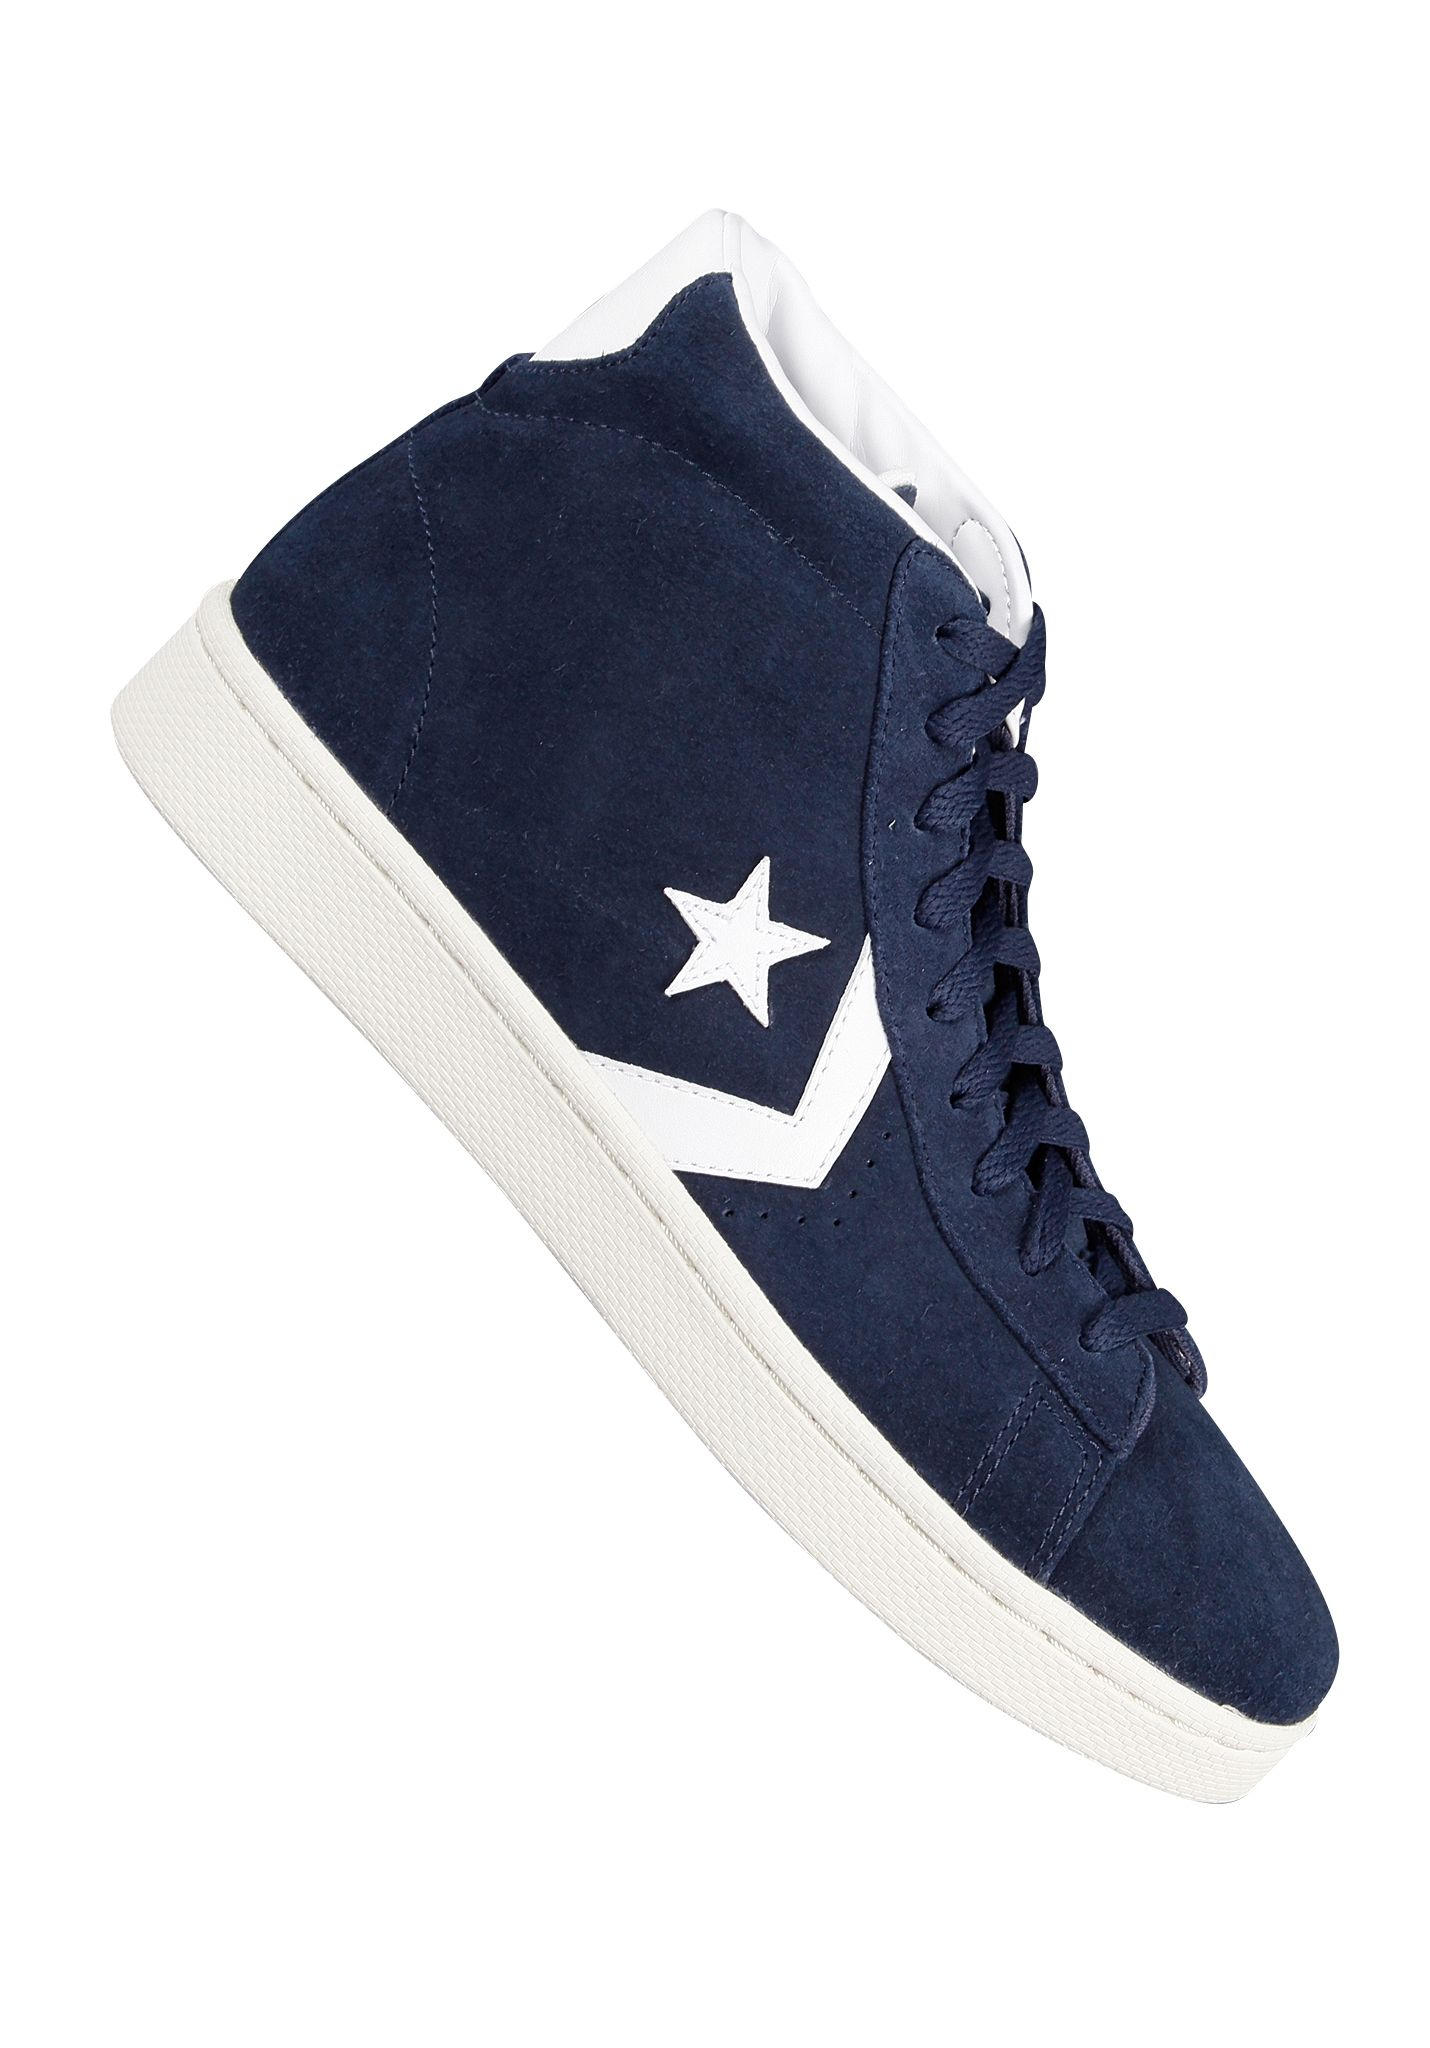 1137f46157629f Converse Pro Leather Mid Suede - Sneakers for Men - Blue - Planet Sports